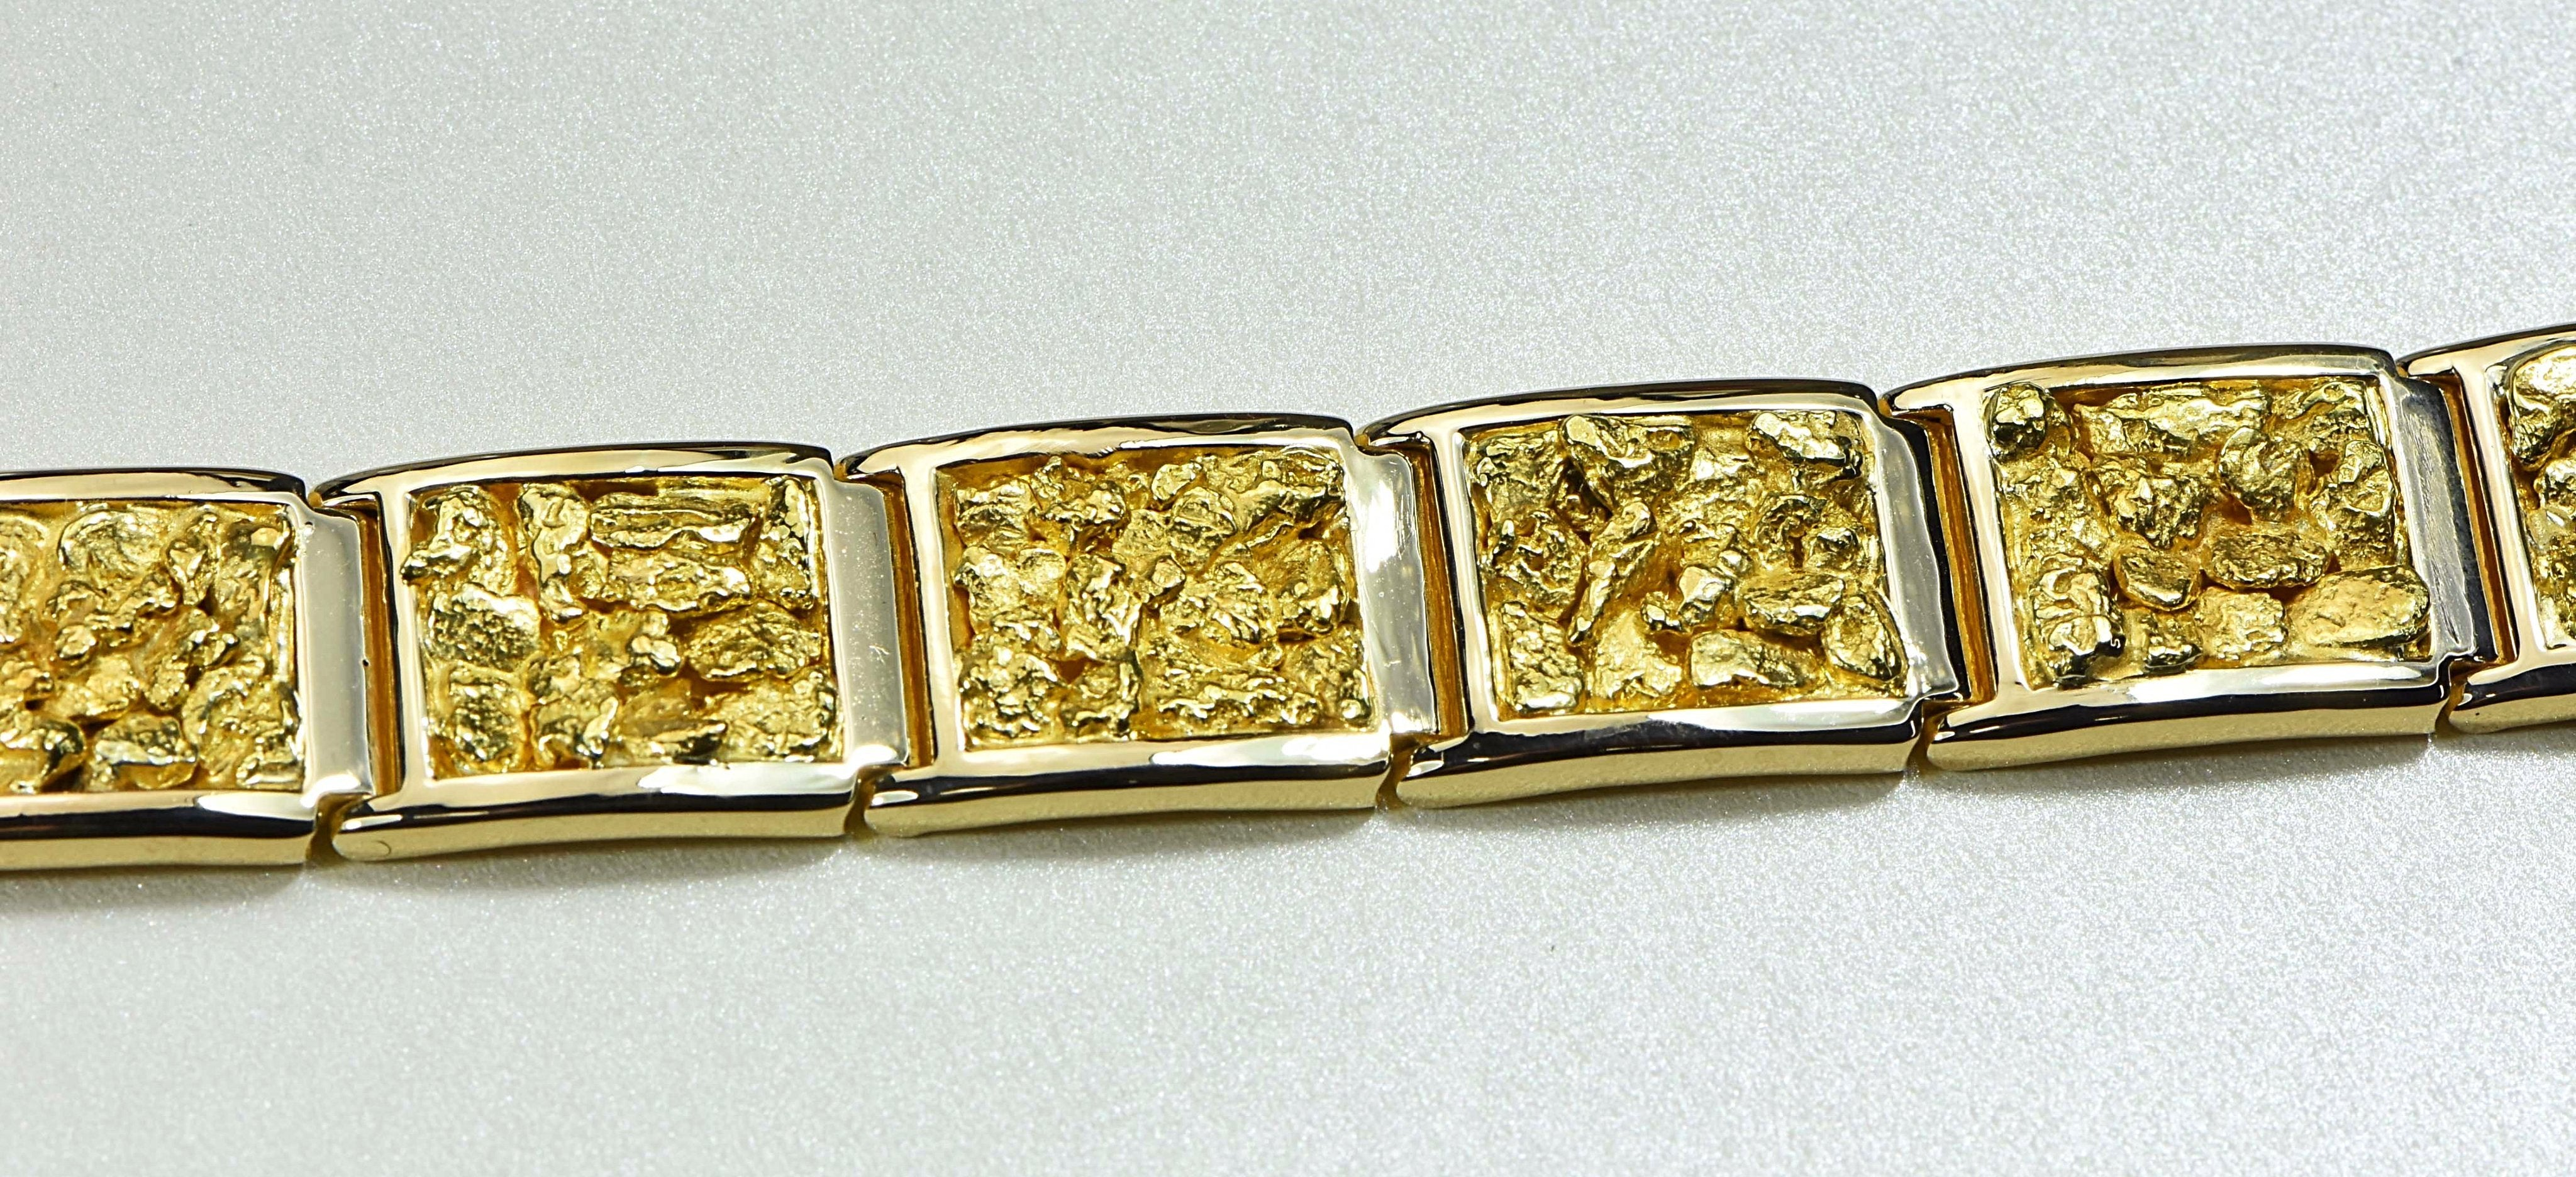 "Gold Nugget Bracelet ""Orocal"" B16MM Genuine Hand Crafted Jewelry - 14K Gold Casting"